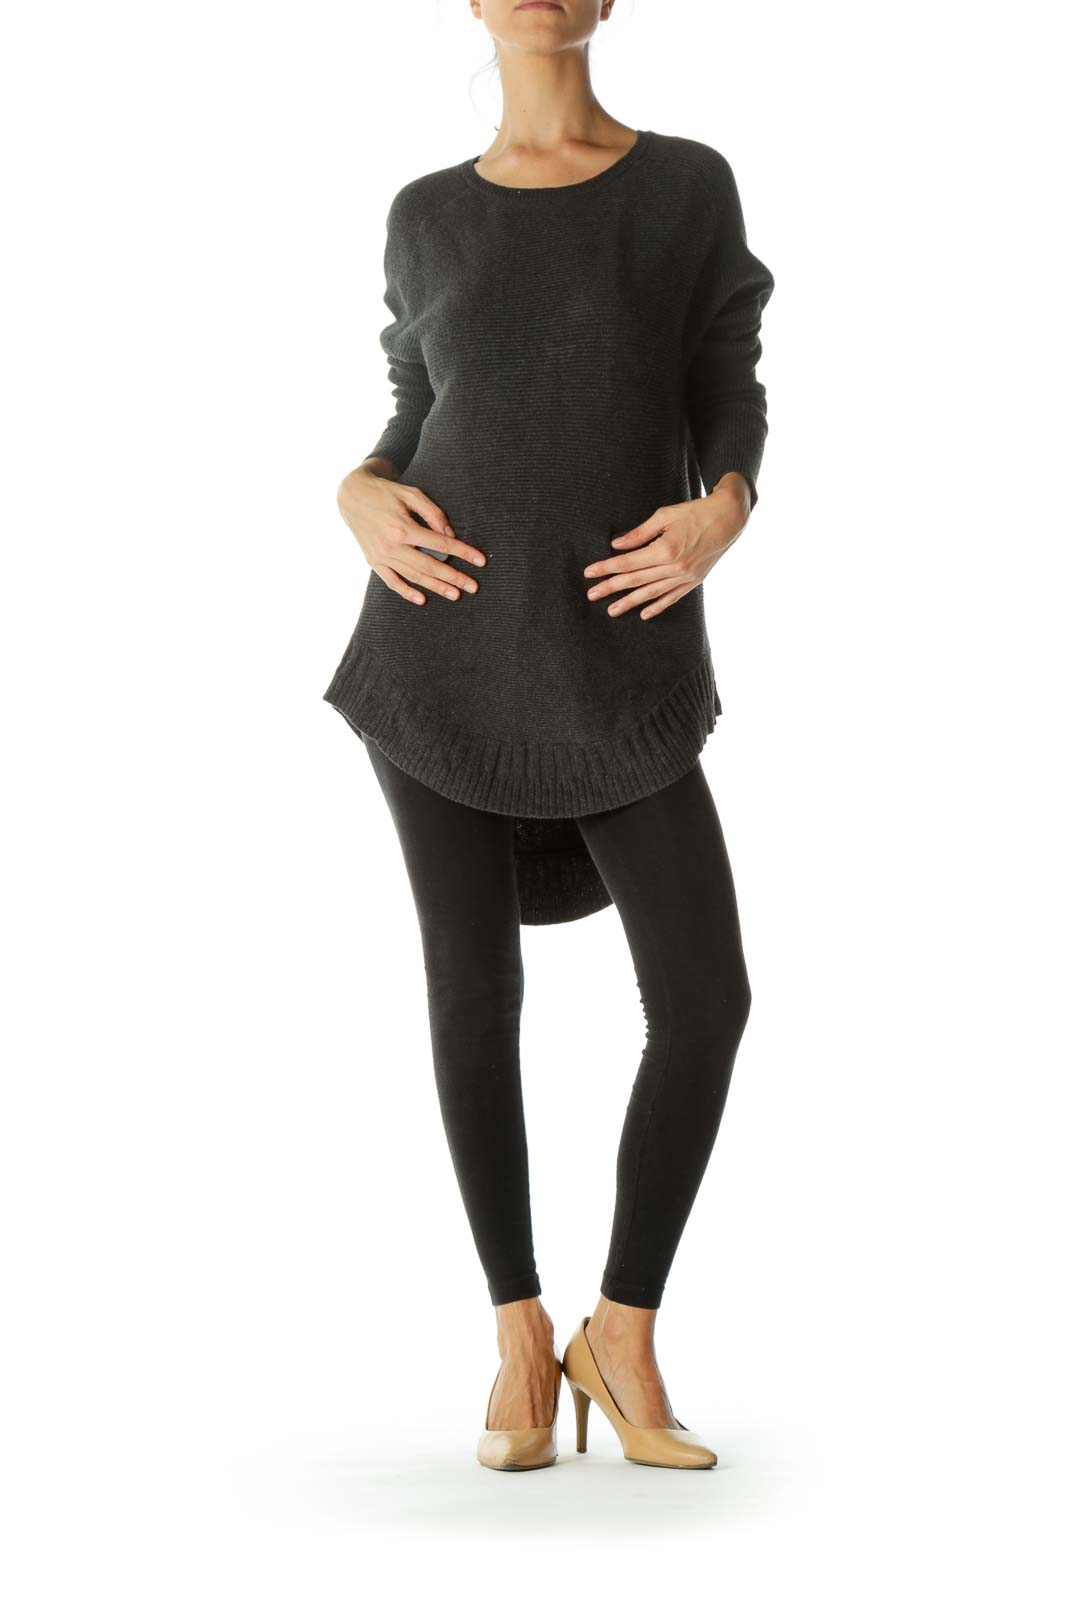 Charcoal Gray Round Neck Ribbed Textured Zippered Pockets Sweater